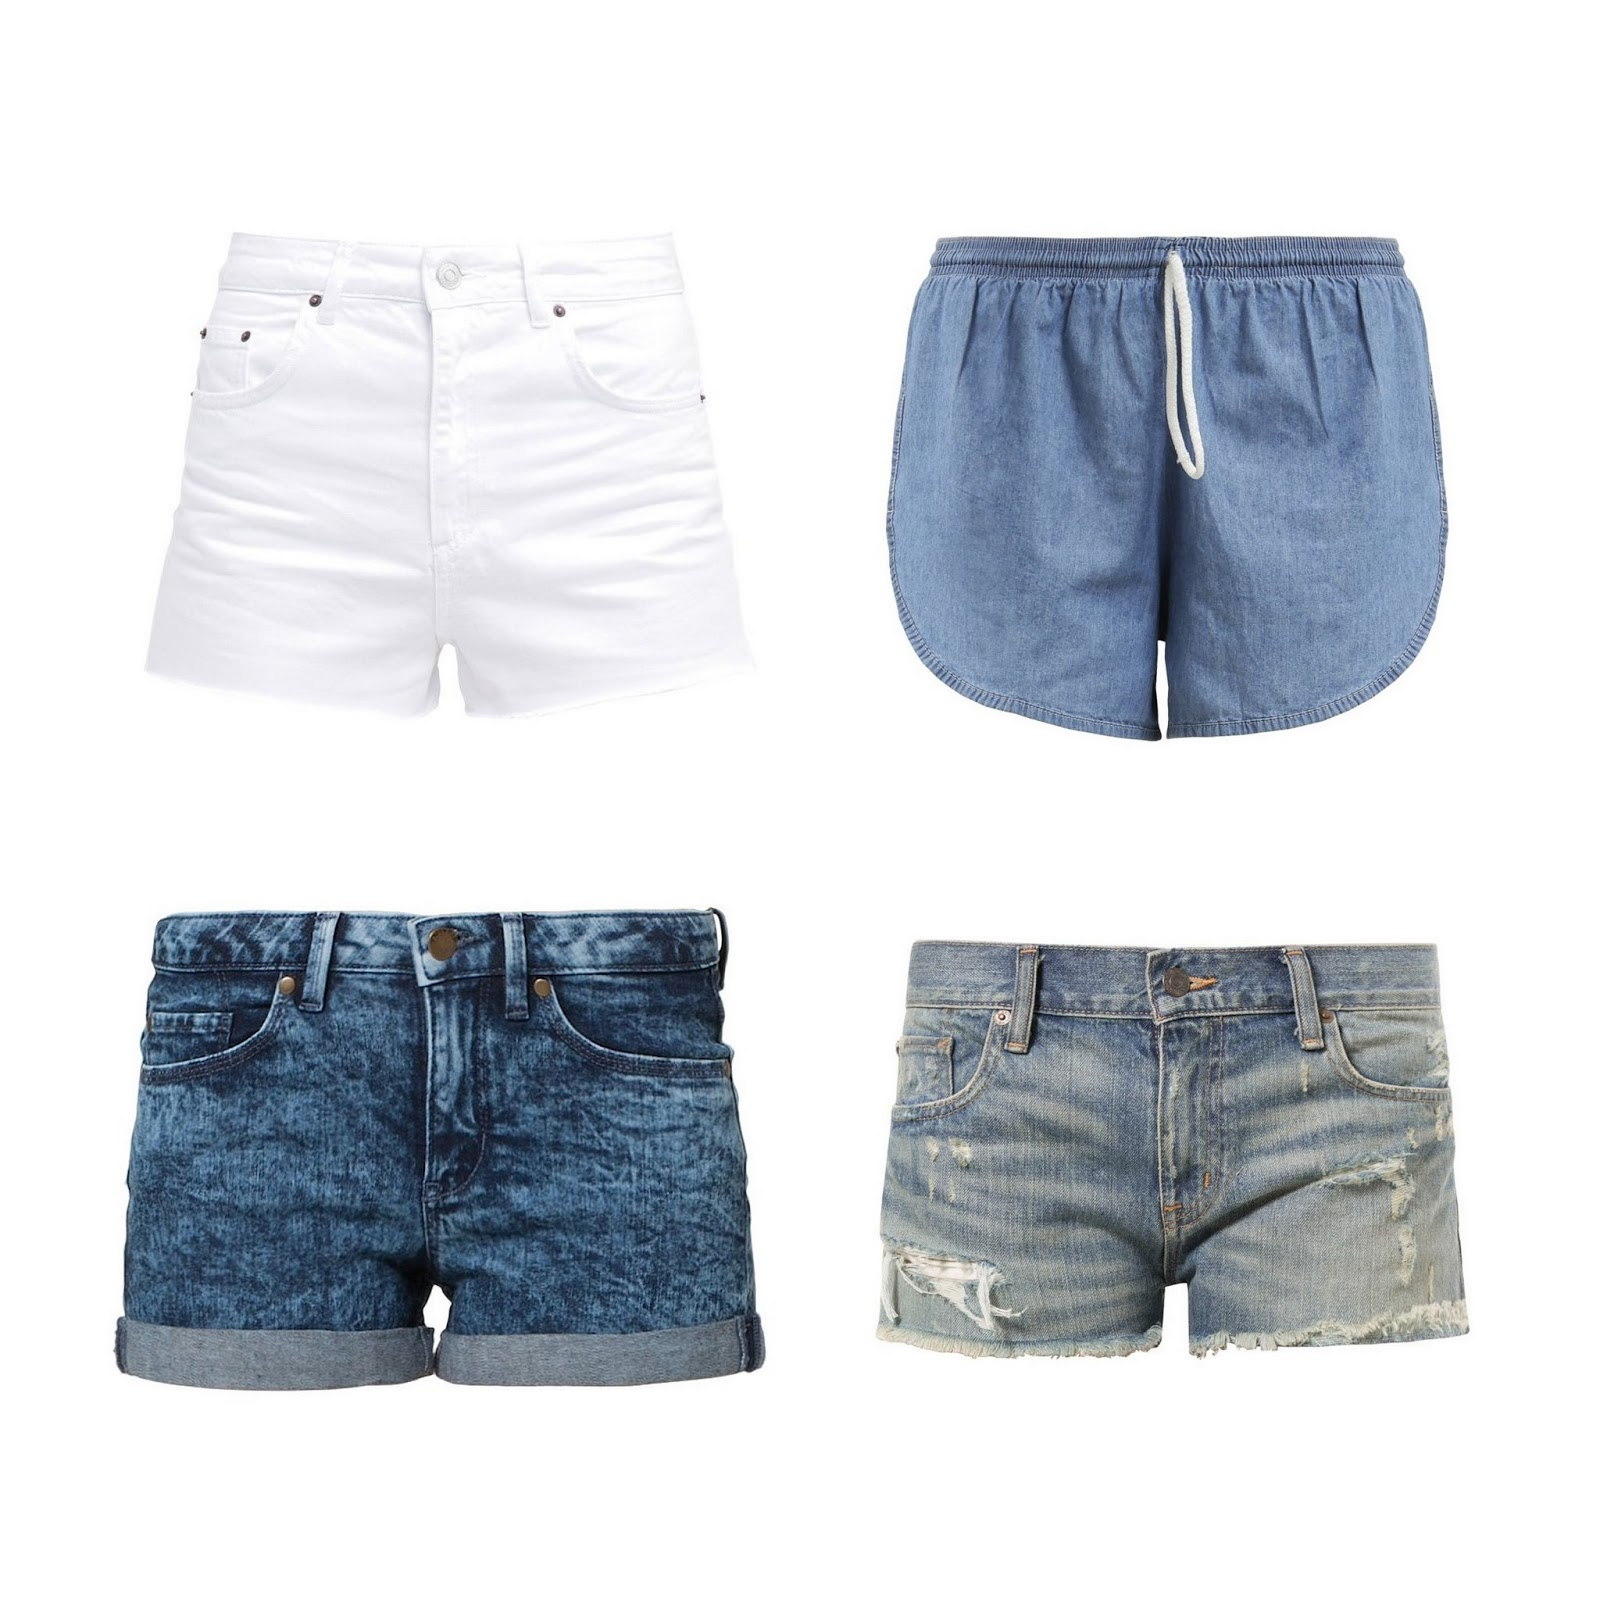 CUTE SHORTS FOR SUMMER - 1310bynora